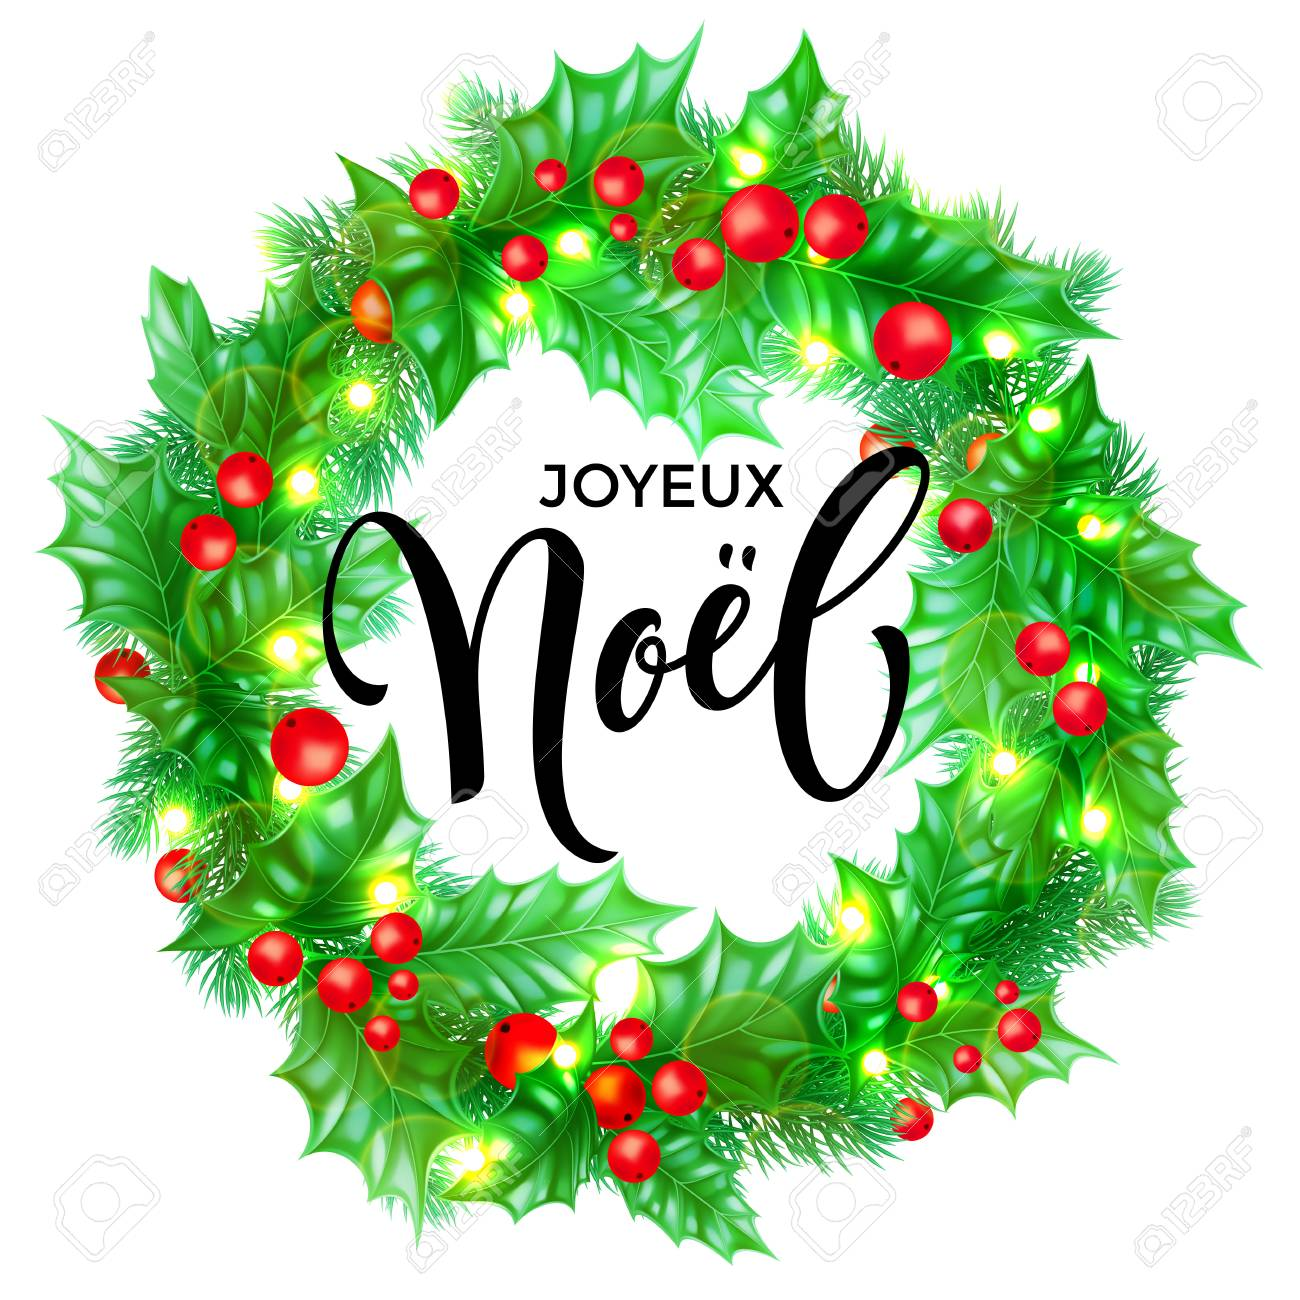 Joyeux Noel French Merry Christmas hand drawn quote calligraphy...